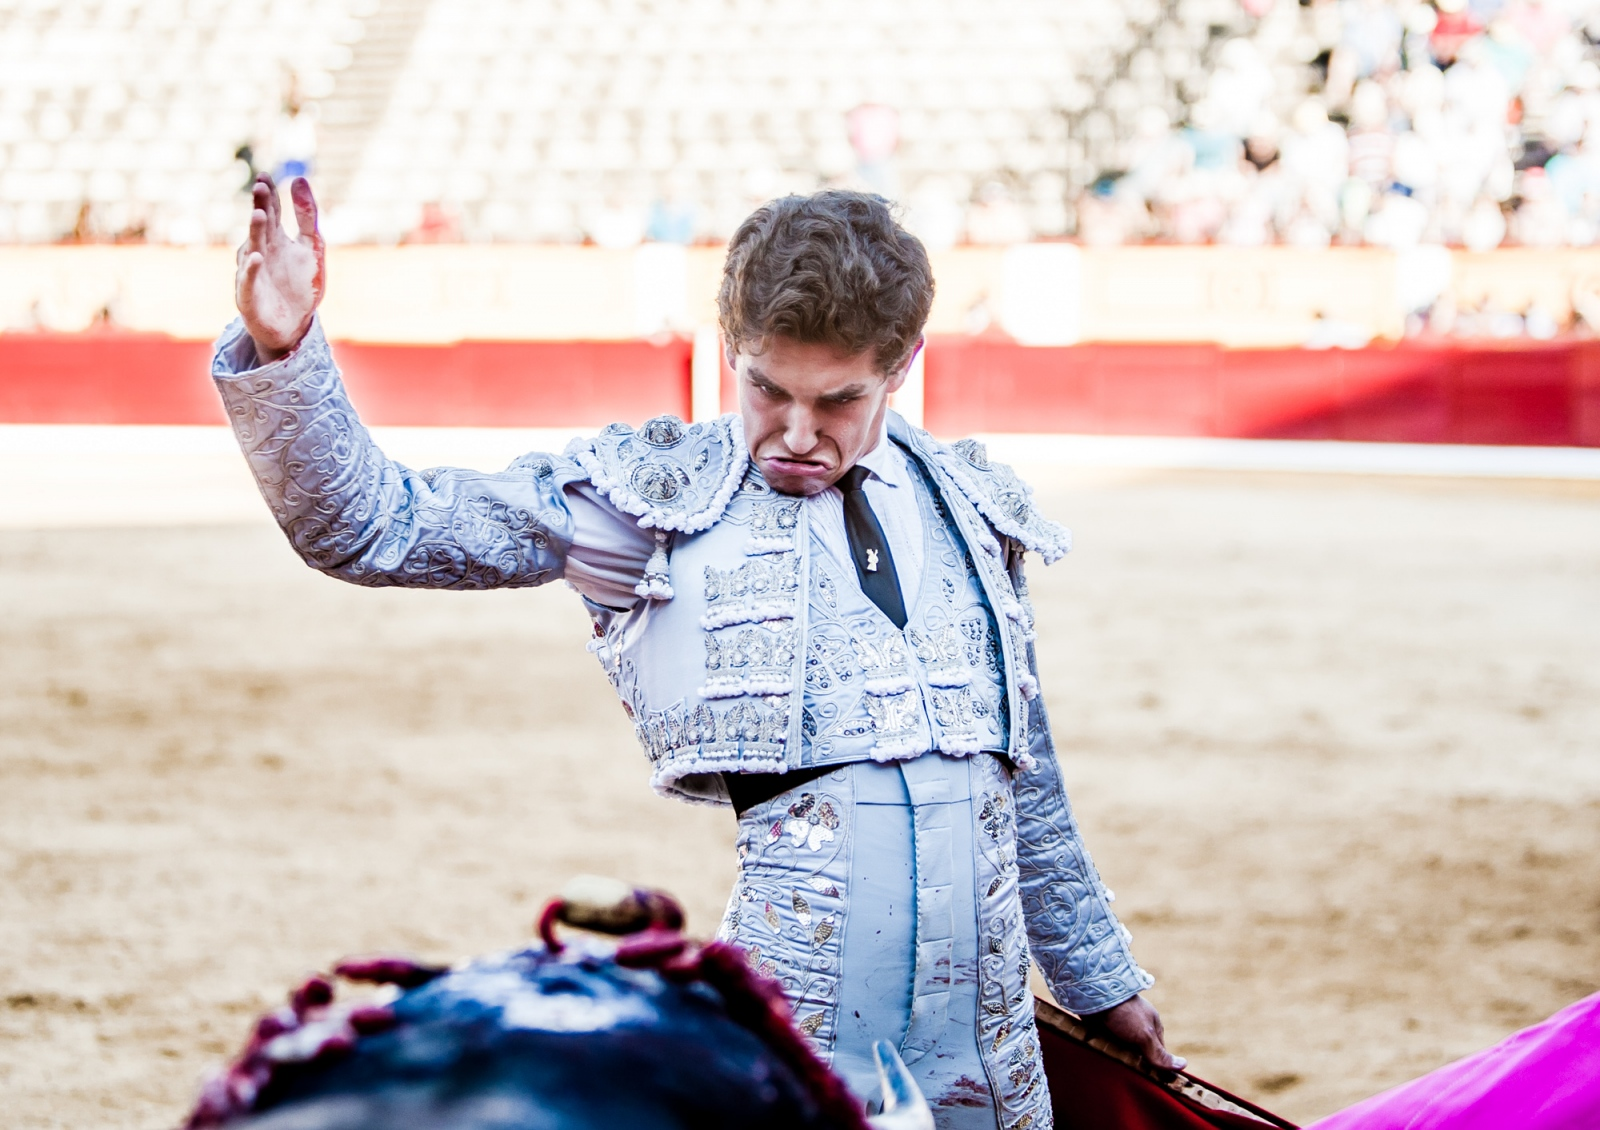 Art and Documentary Photography - Loading Oto_Bullfight_11.jpg